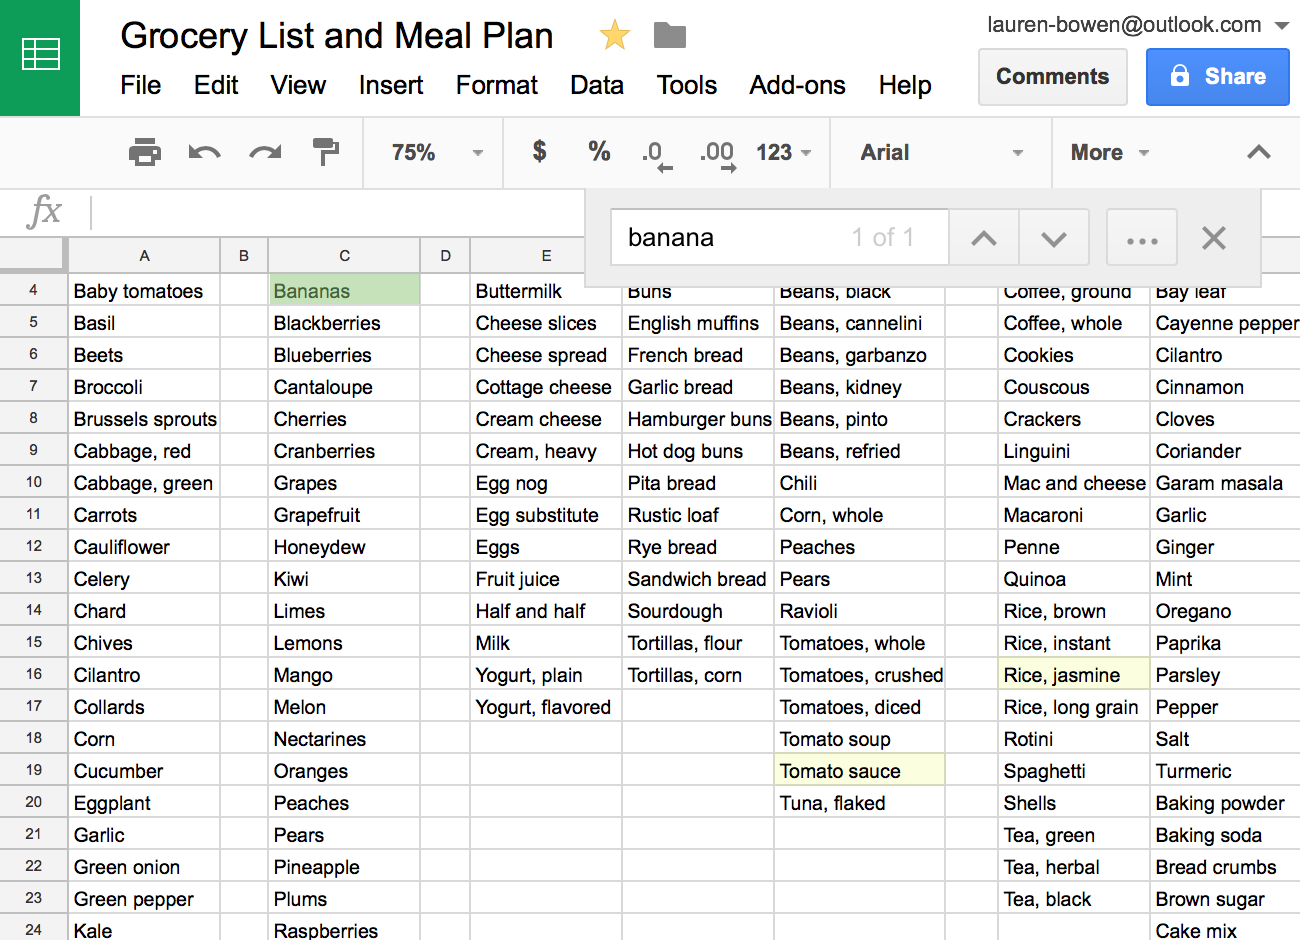 Spending Spreadsheet Google Docs Regarding How I Use Google Sheets For Grocery Shopping And Meal Planning